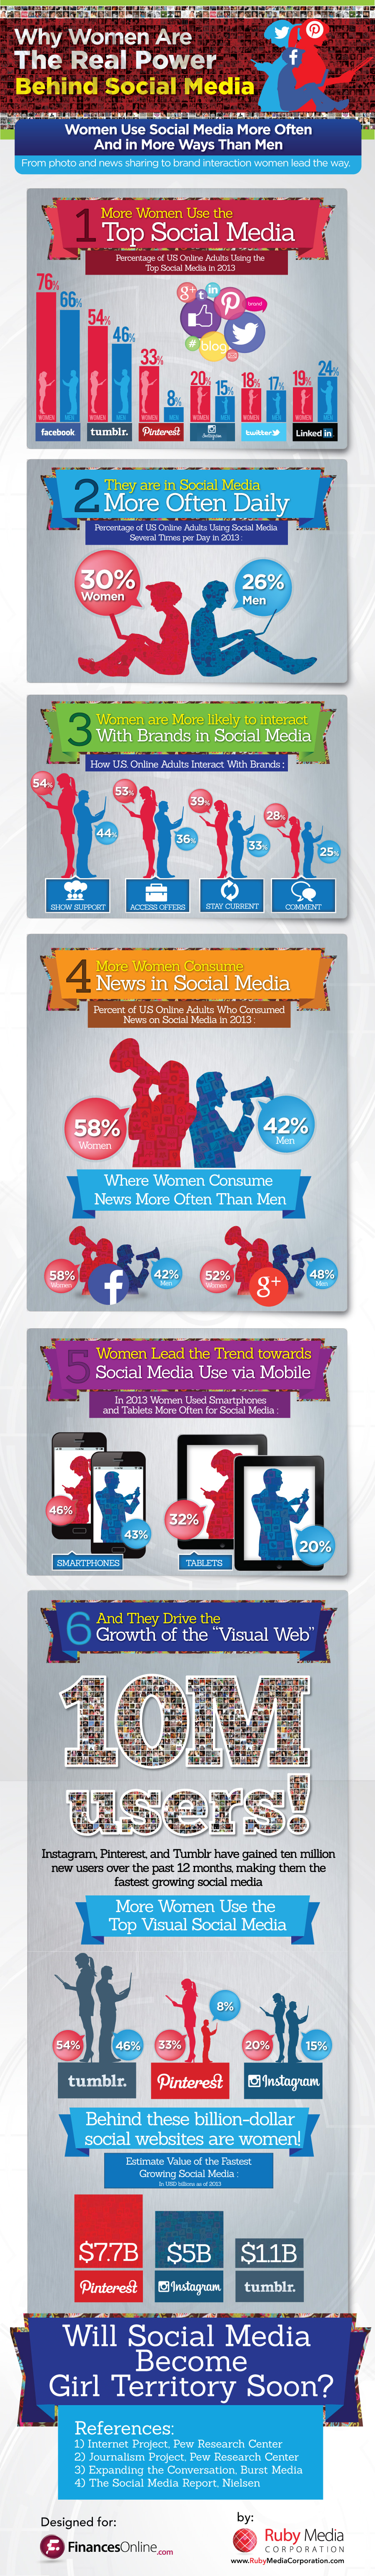 Women Power Social Media: How Women Lead the Way in All Things Social [Infographic]